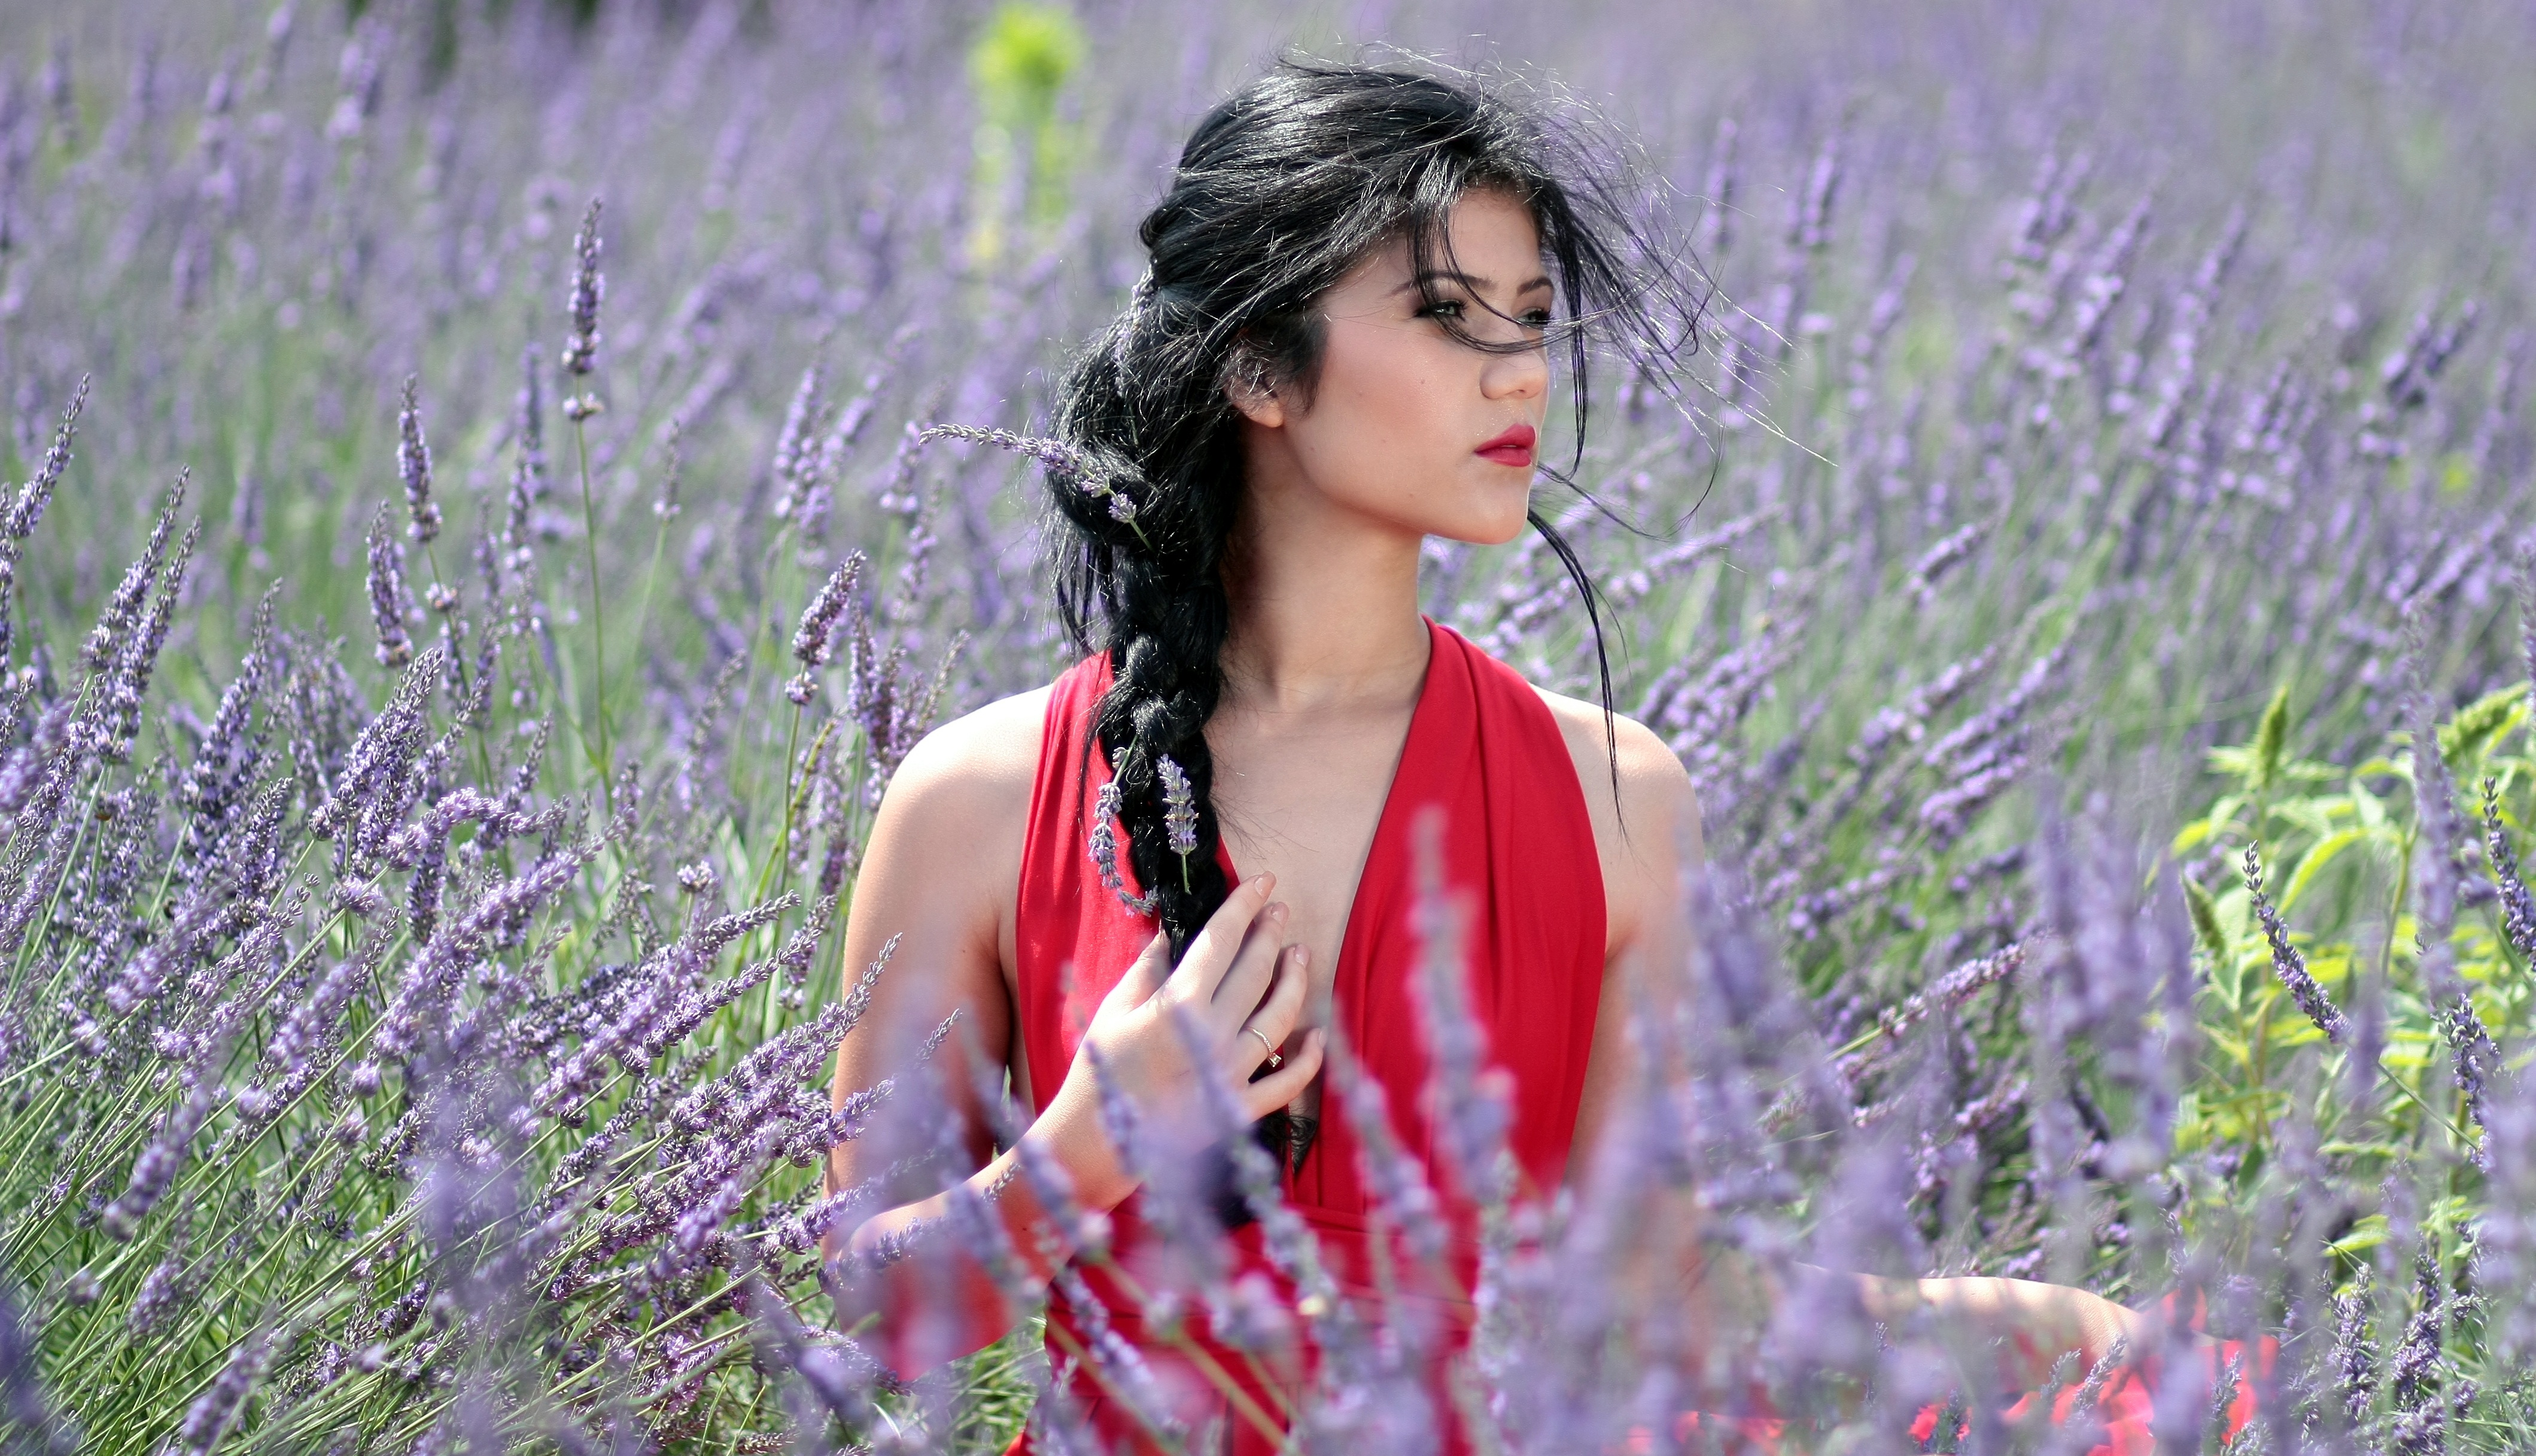 beautiful-girl-in-lavender-flowers image - Free stock photo - Public Domain photo ...